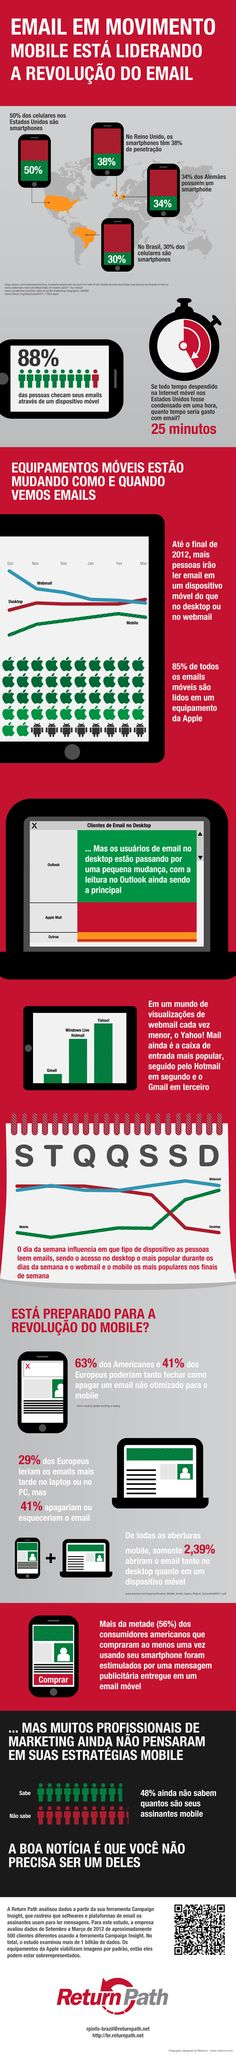 83 best digital culture images on pinterest info graphics social email em movimento mobile est liderando a revoluo do email infografico stats fandeluxe Gallery